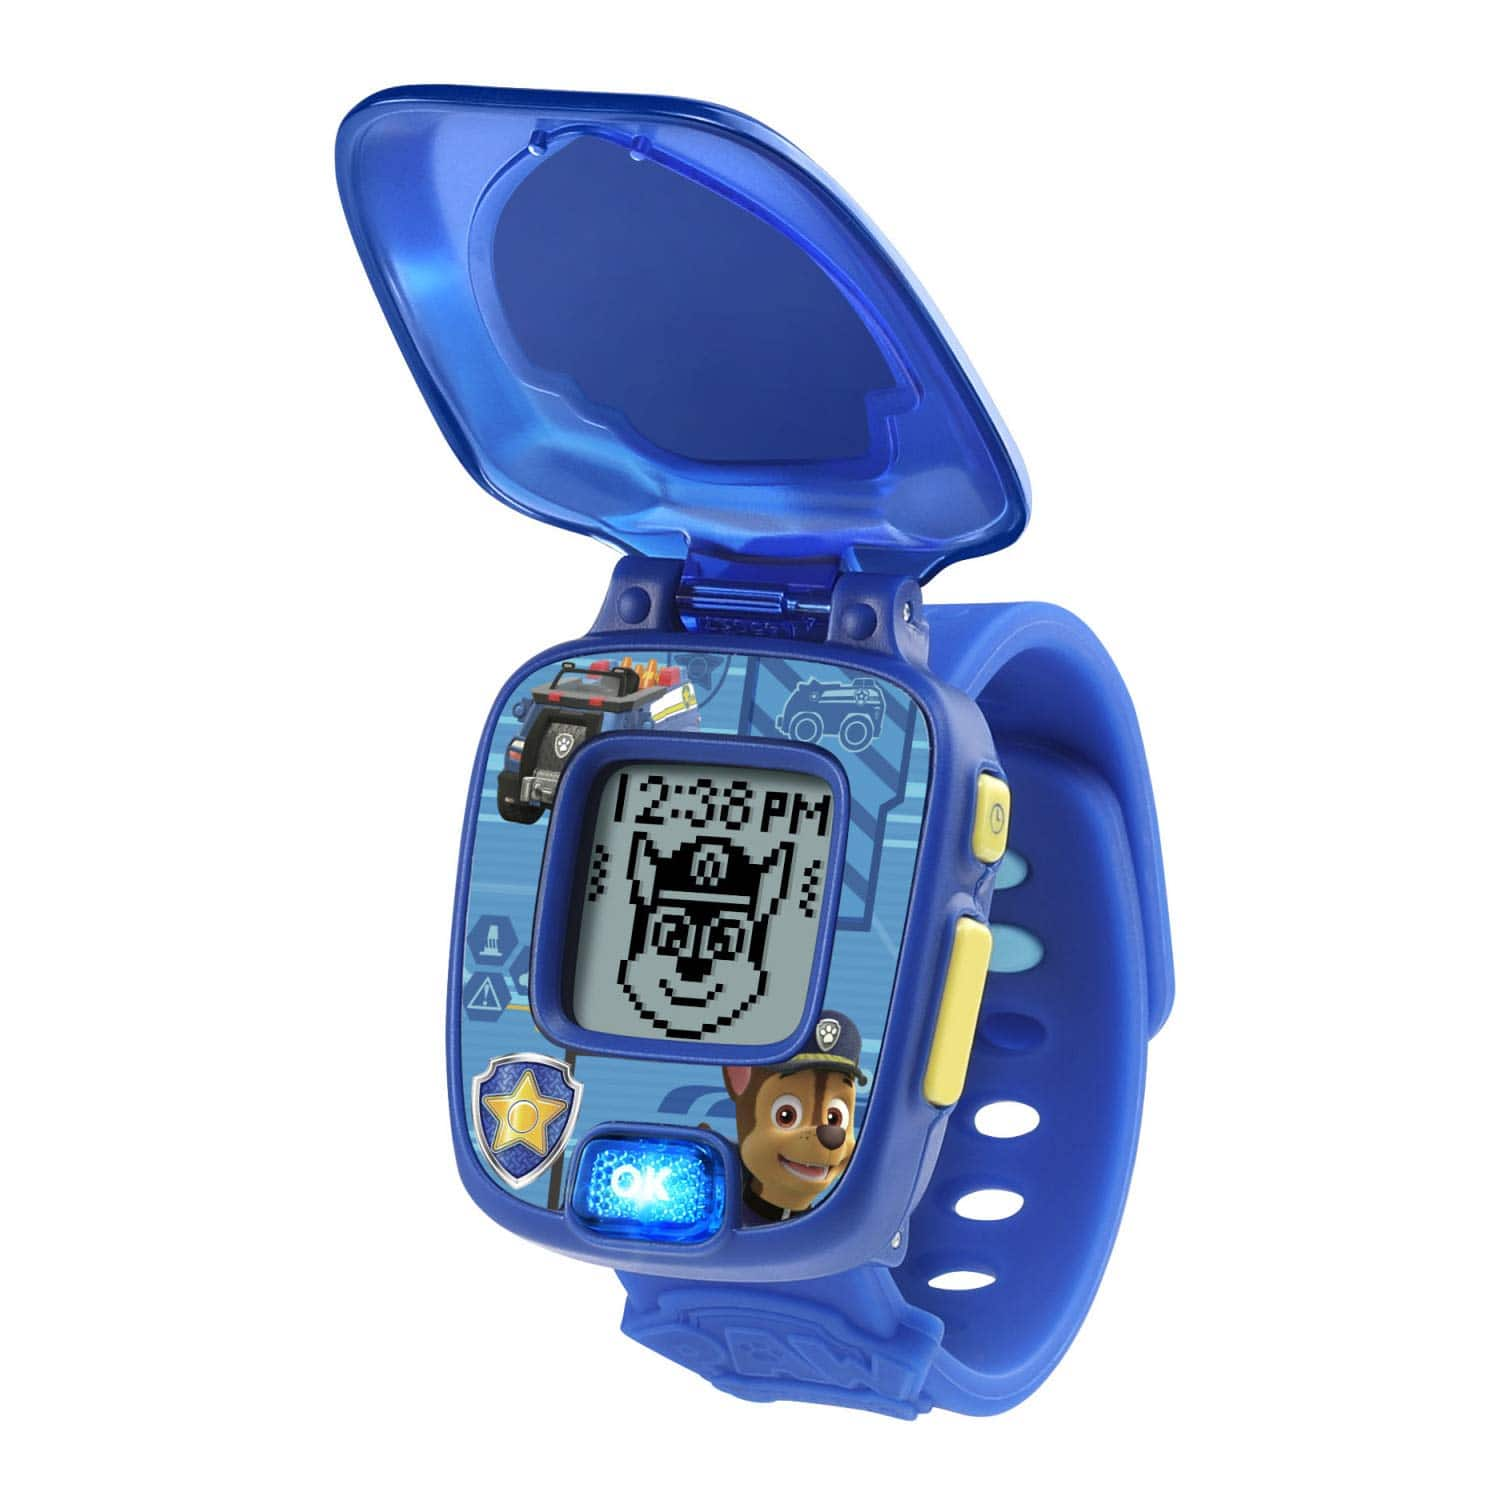 VTech Paw Patrol Chase Learning Watch (Blue) $10 + FSSS